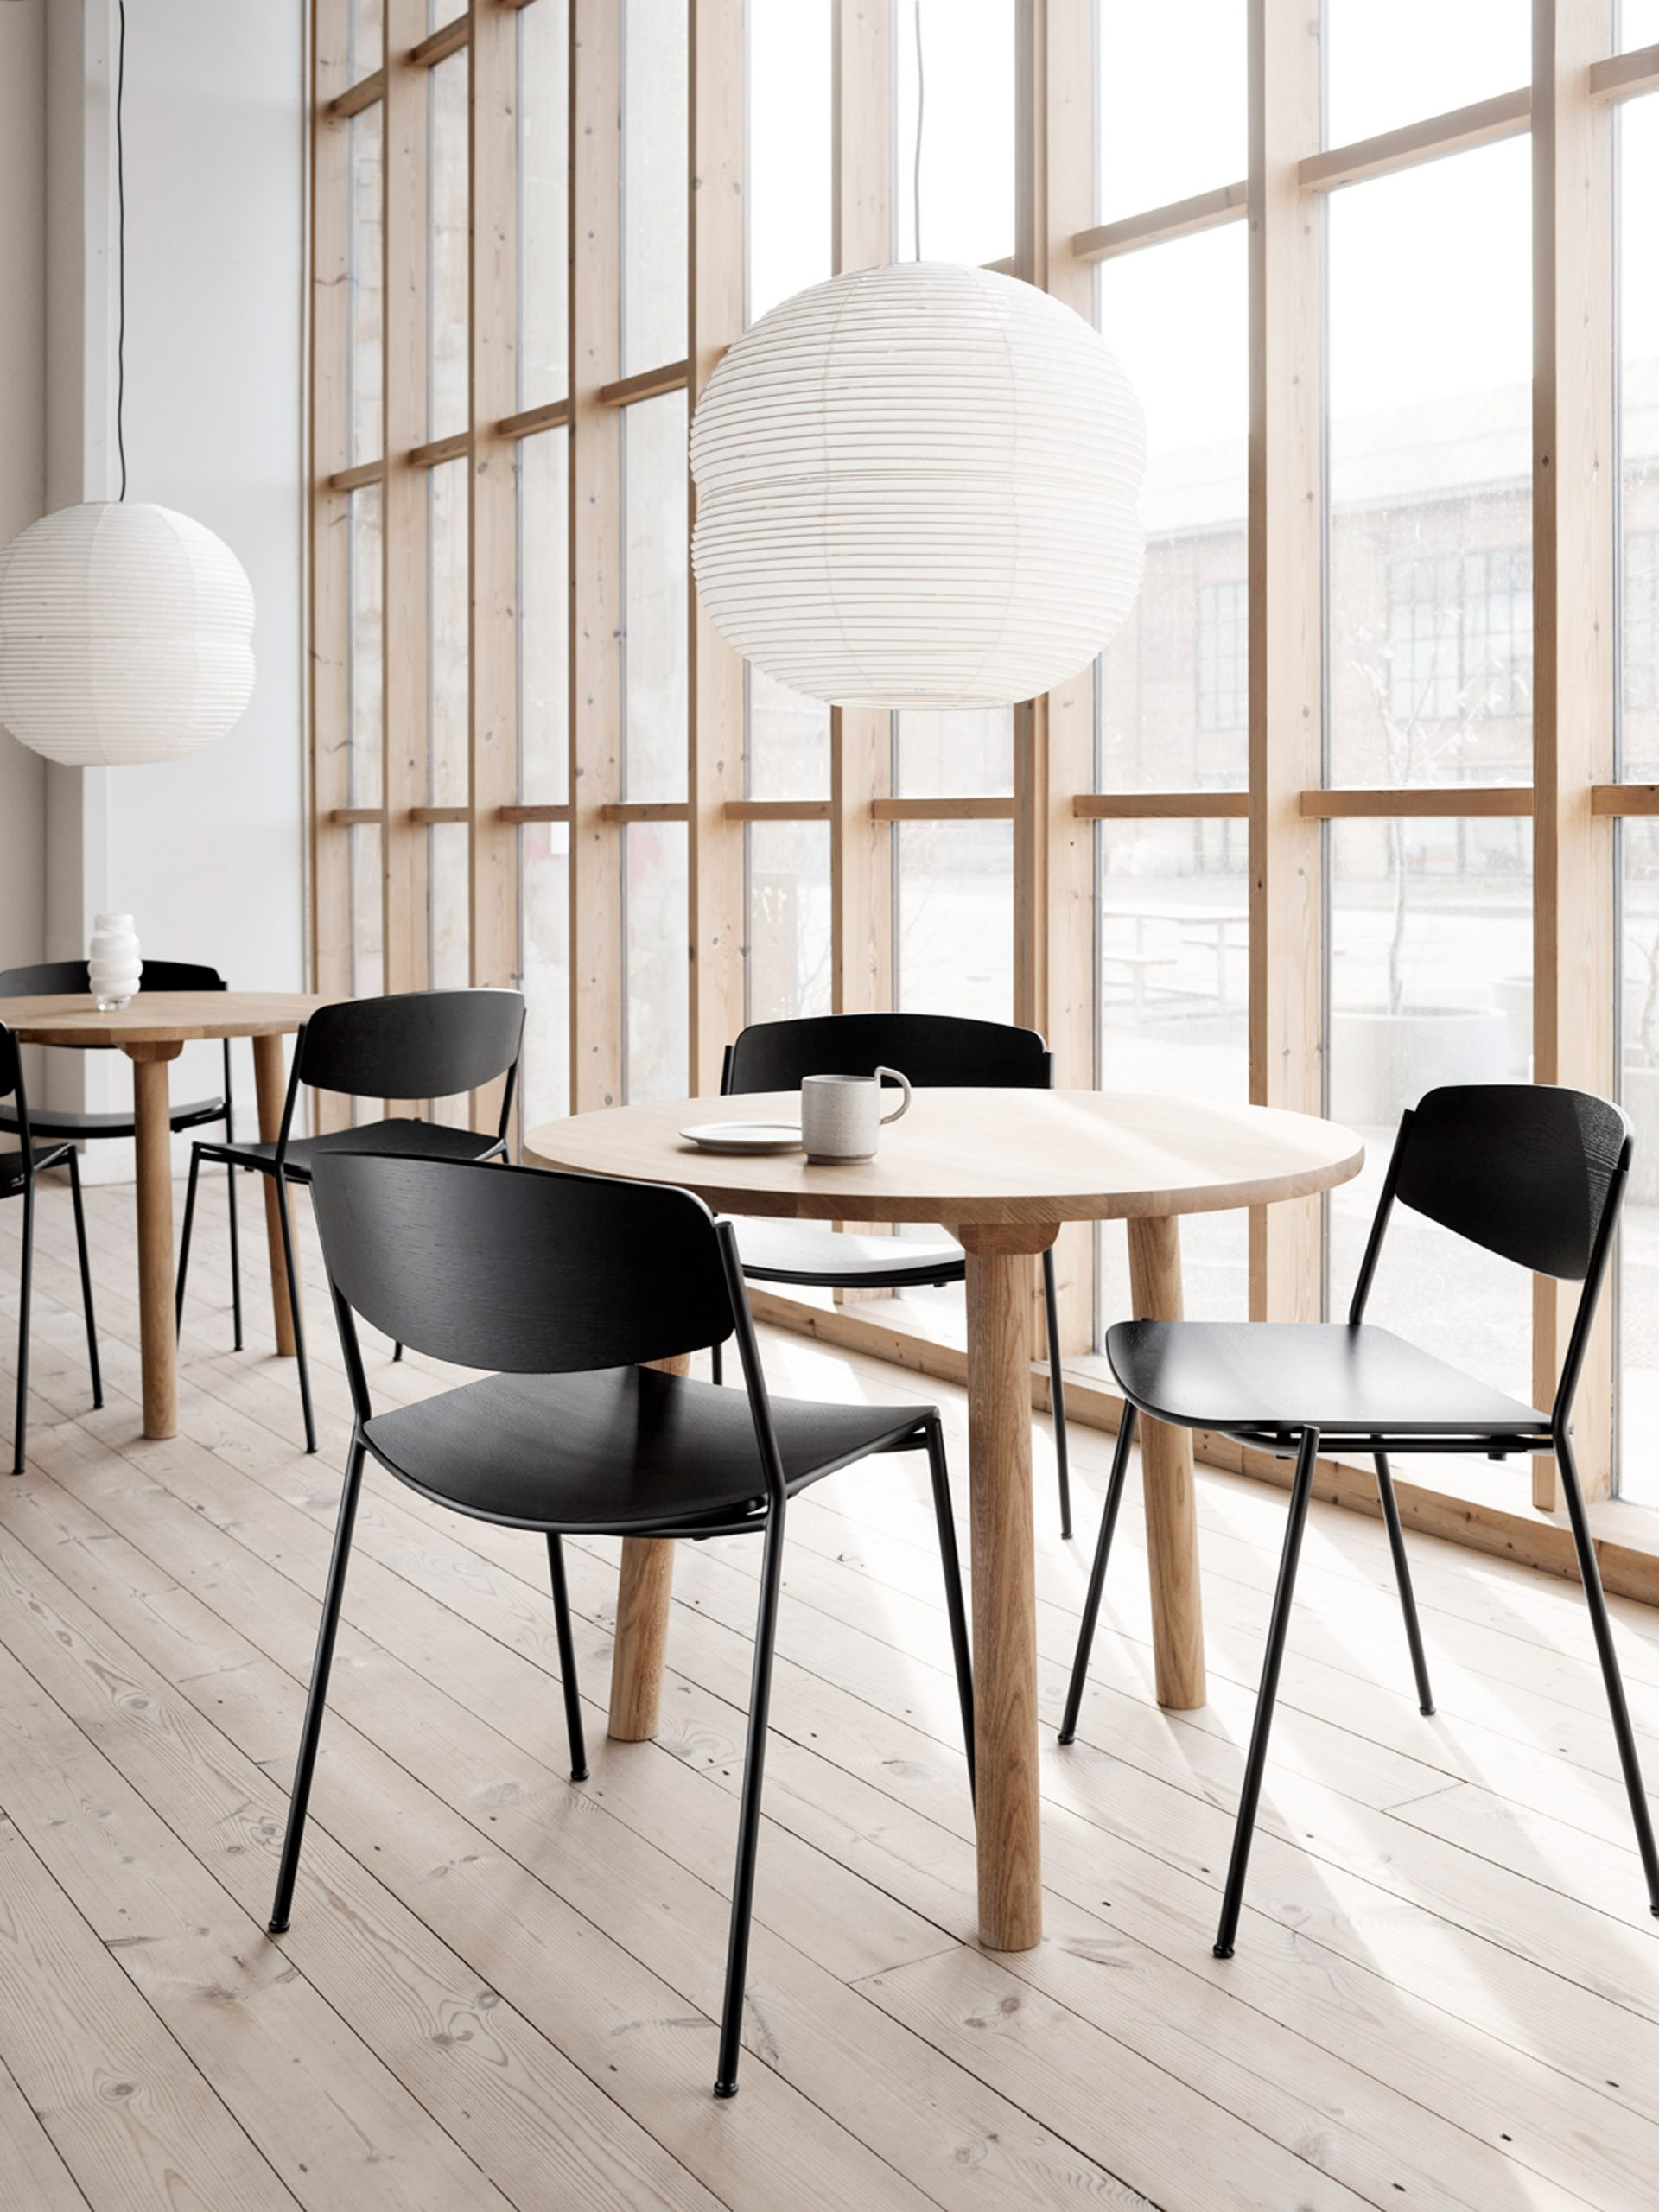 Black chairs at round cafe tables